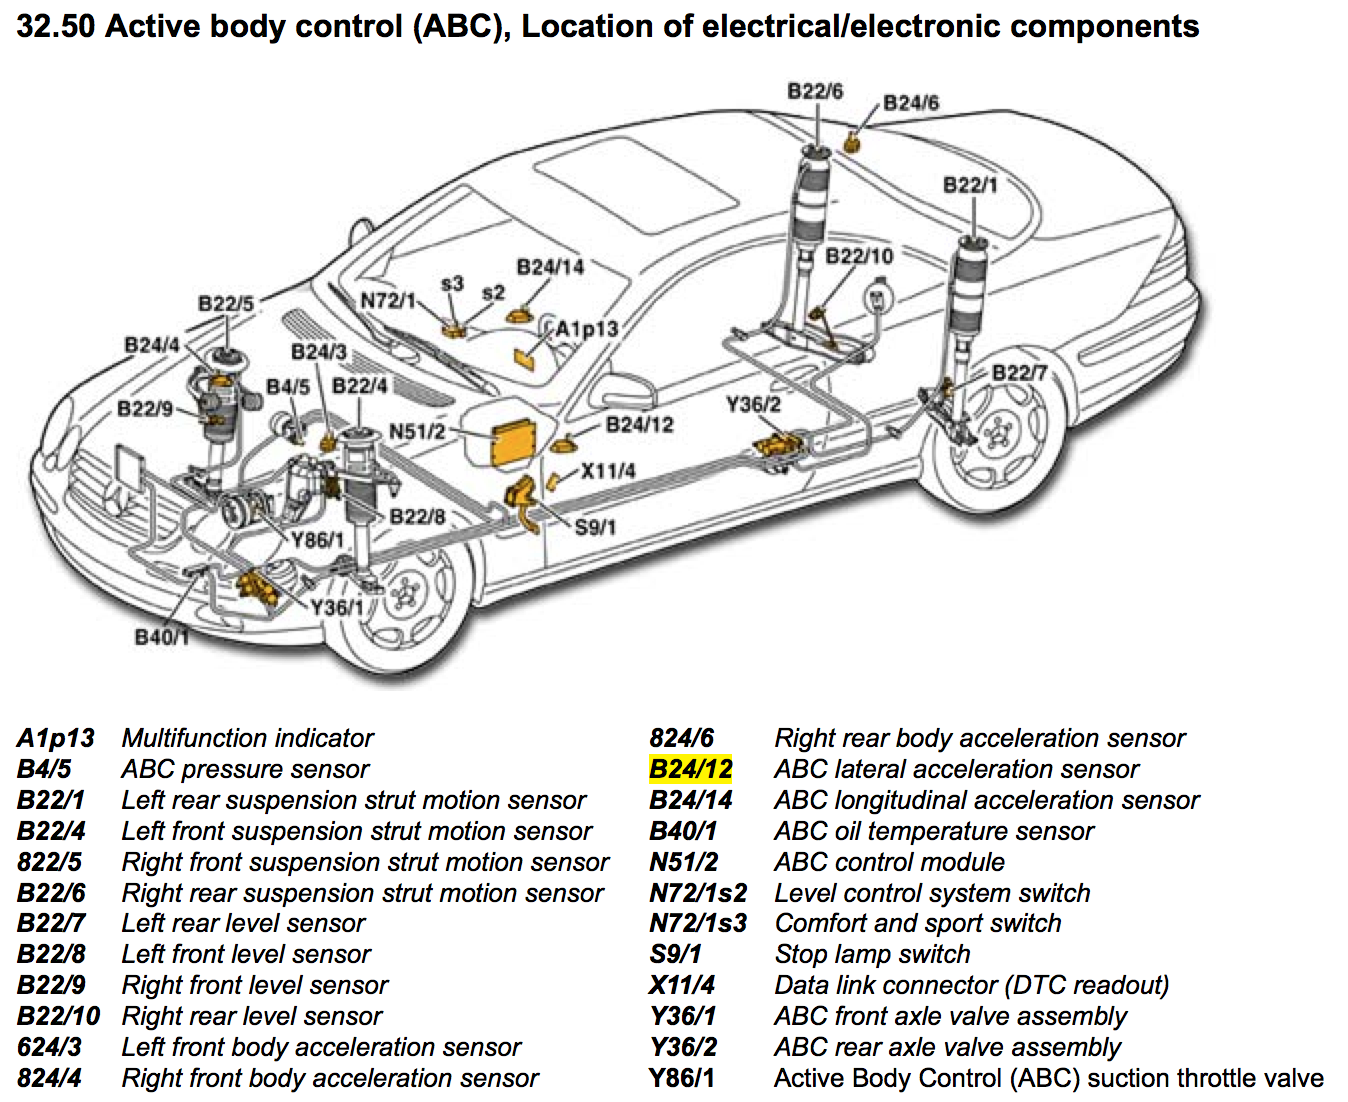 Mercedes Benz ABC System Troubleshooting Guide: August 2014